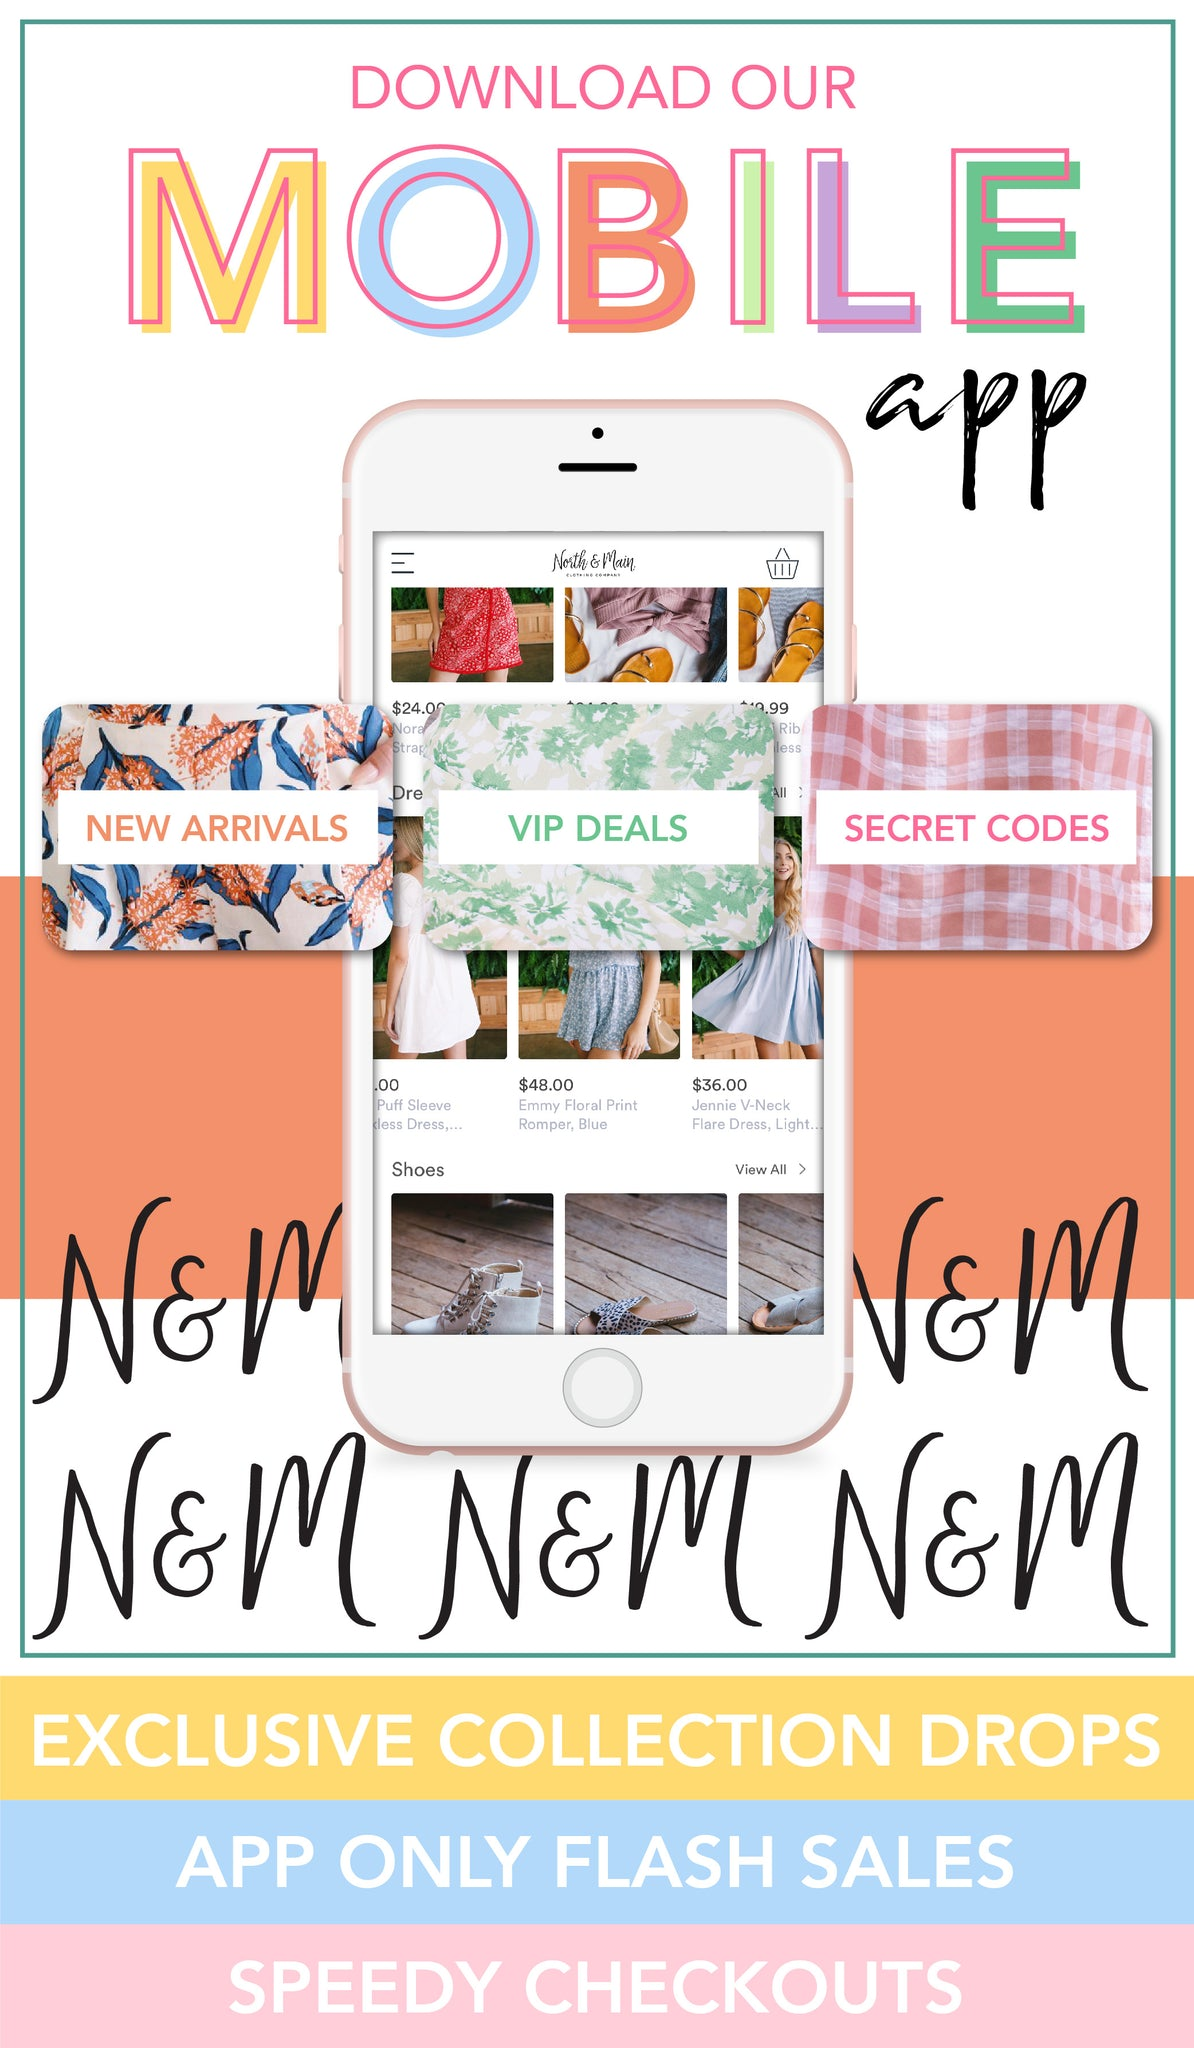 North & Main Clothing Co Mobile App